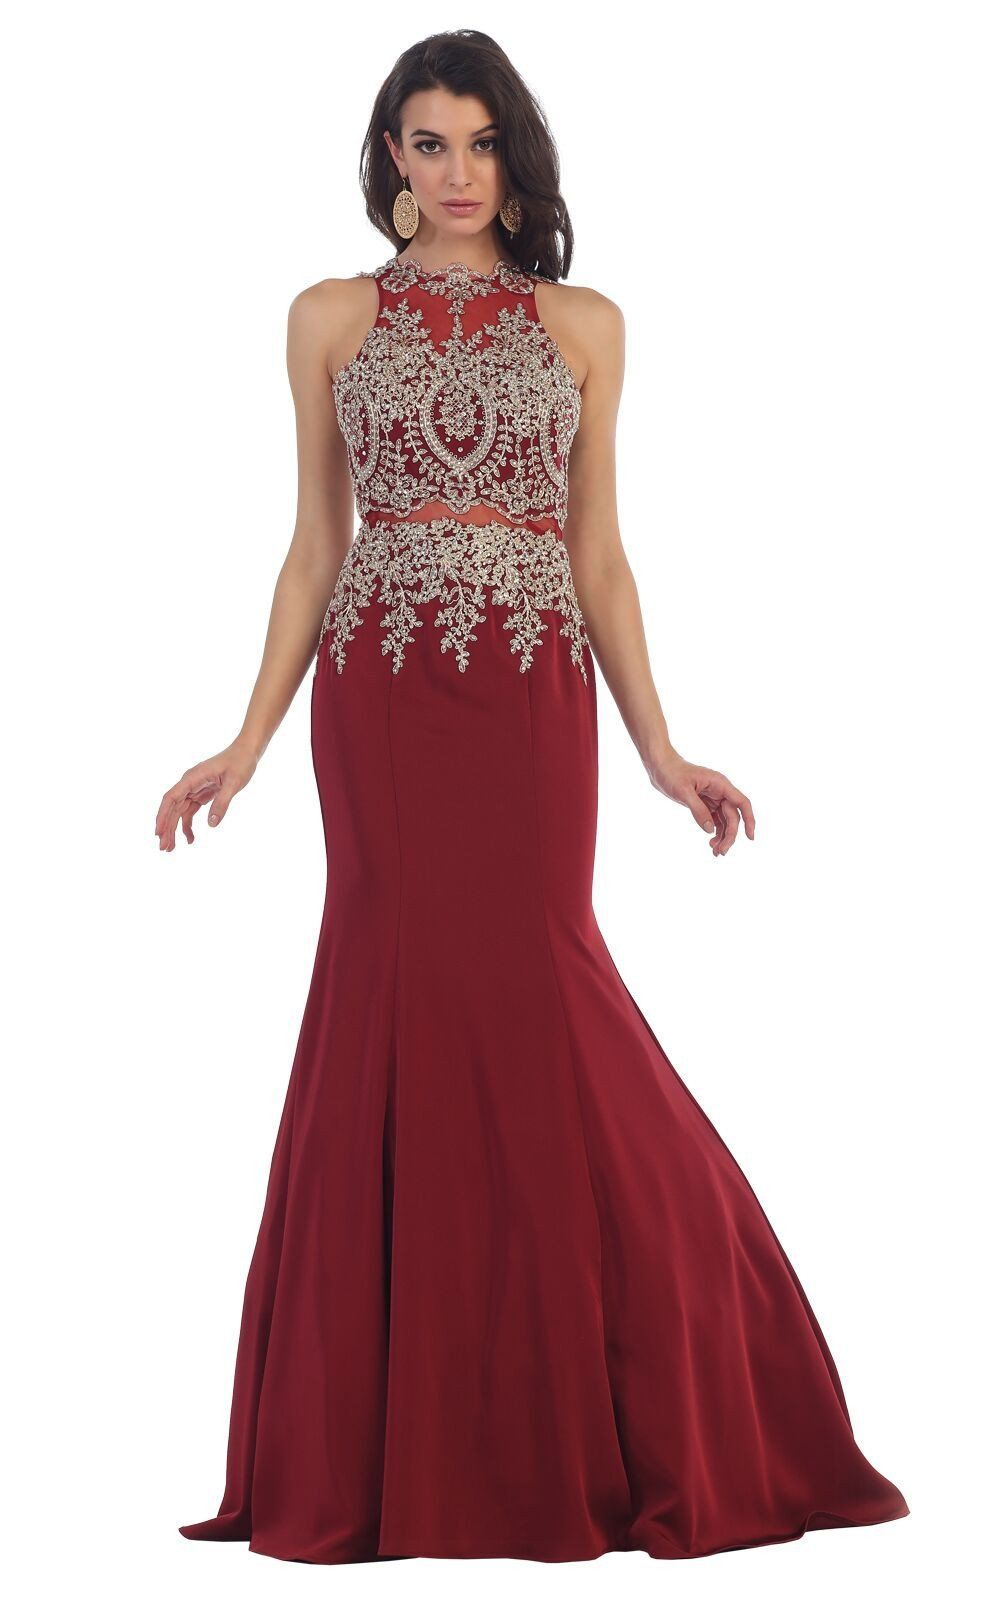 Prom long dress homecoming plus size evening formal gown products